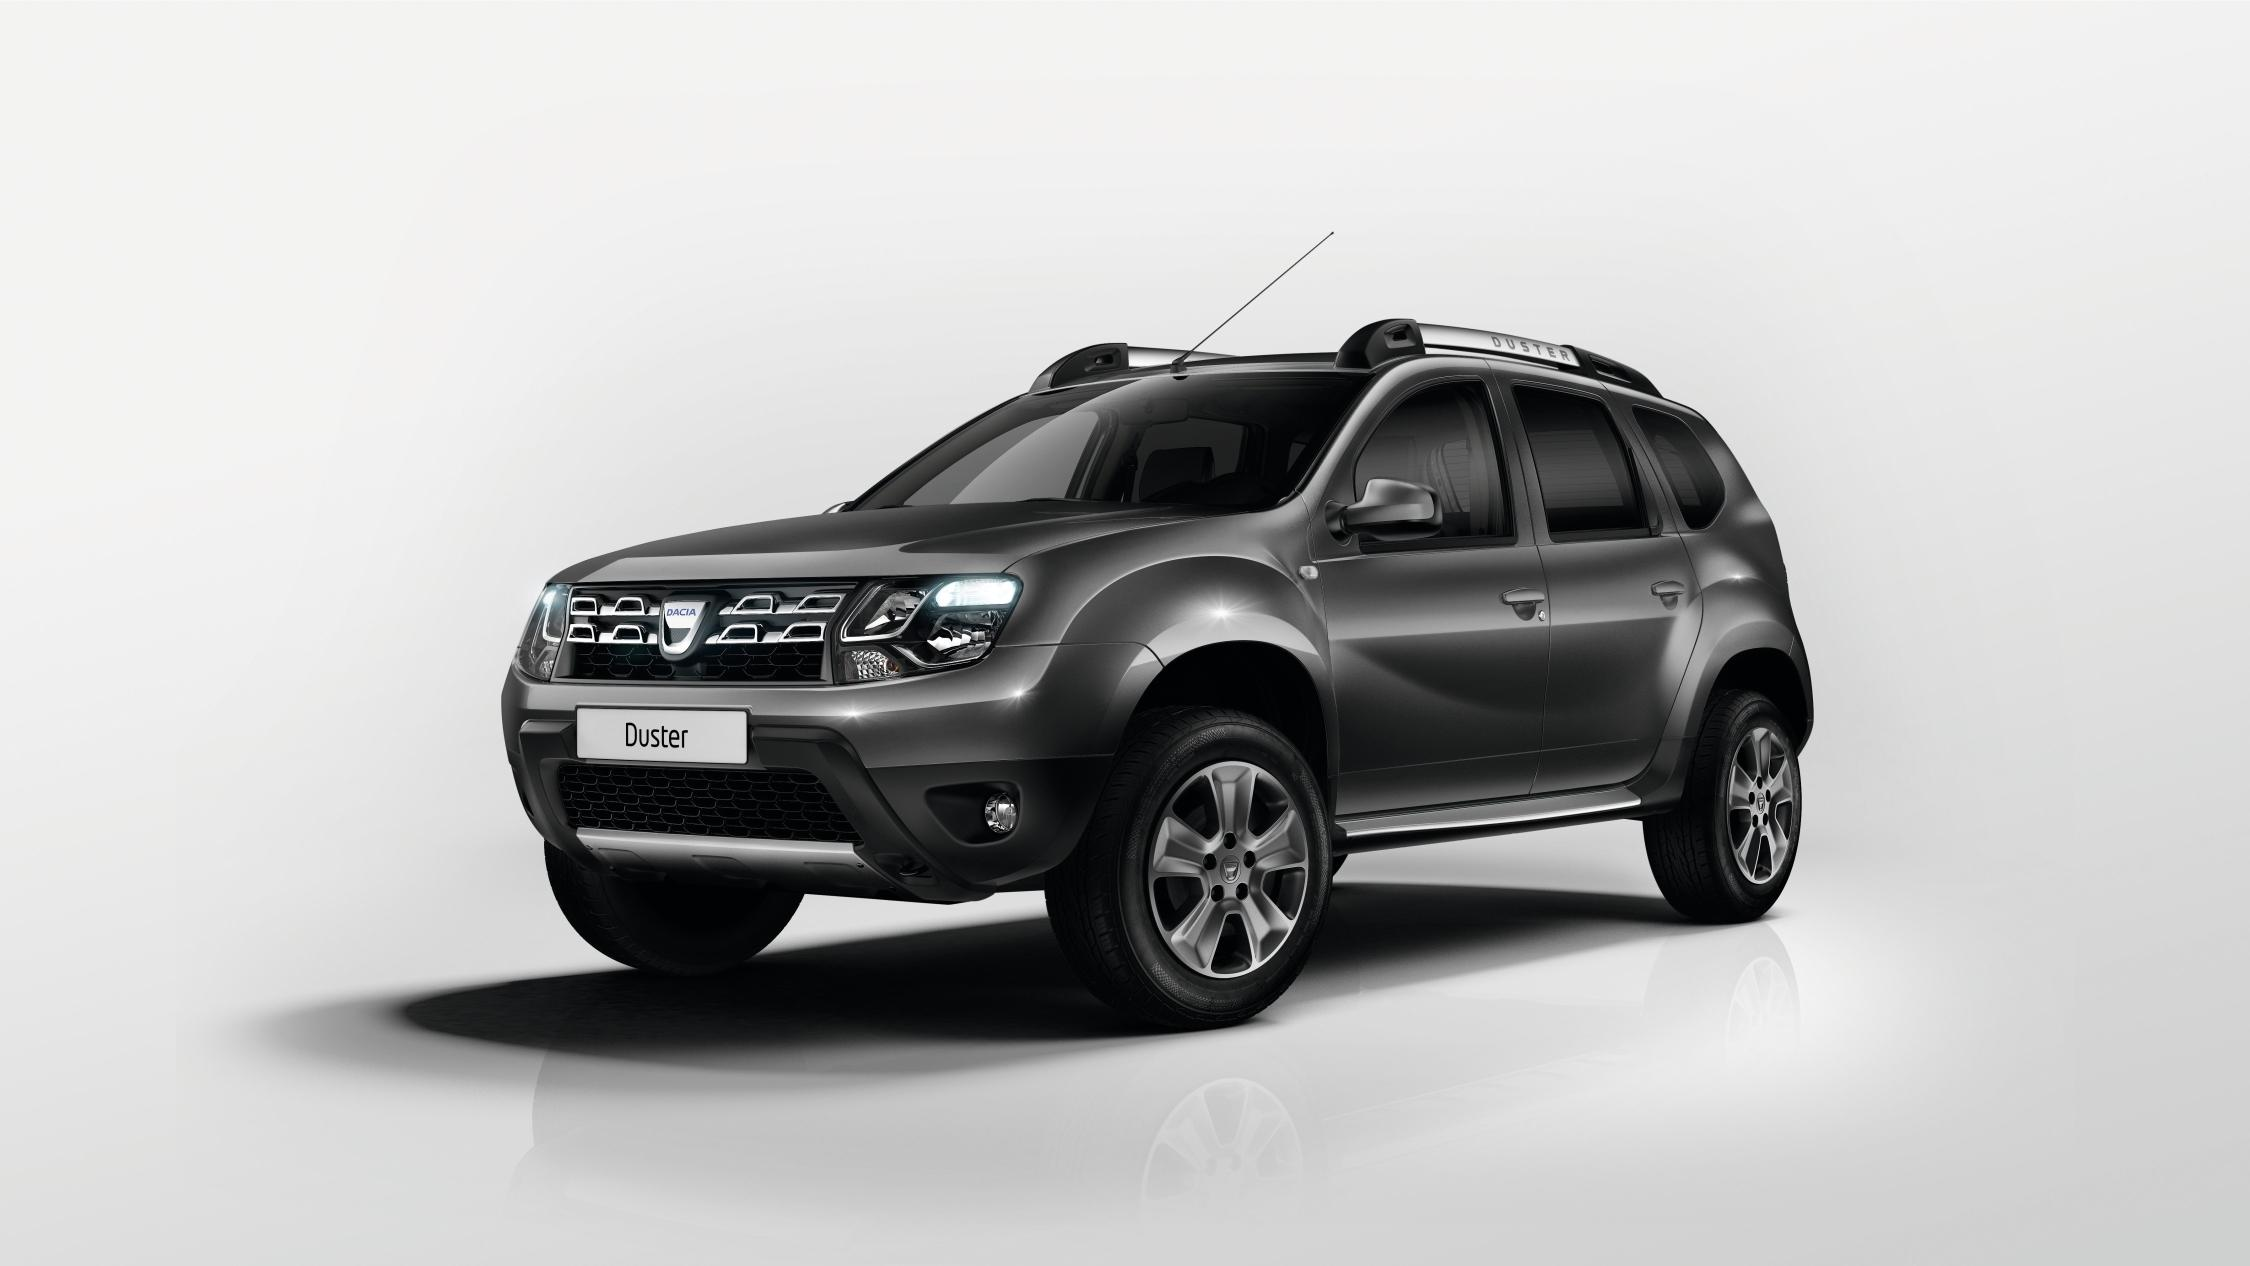 Dacia News At The 2016 Geneva Motor Show